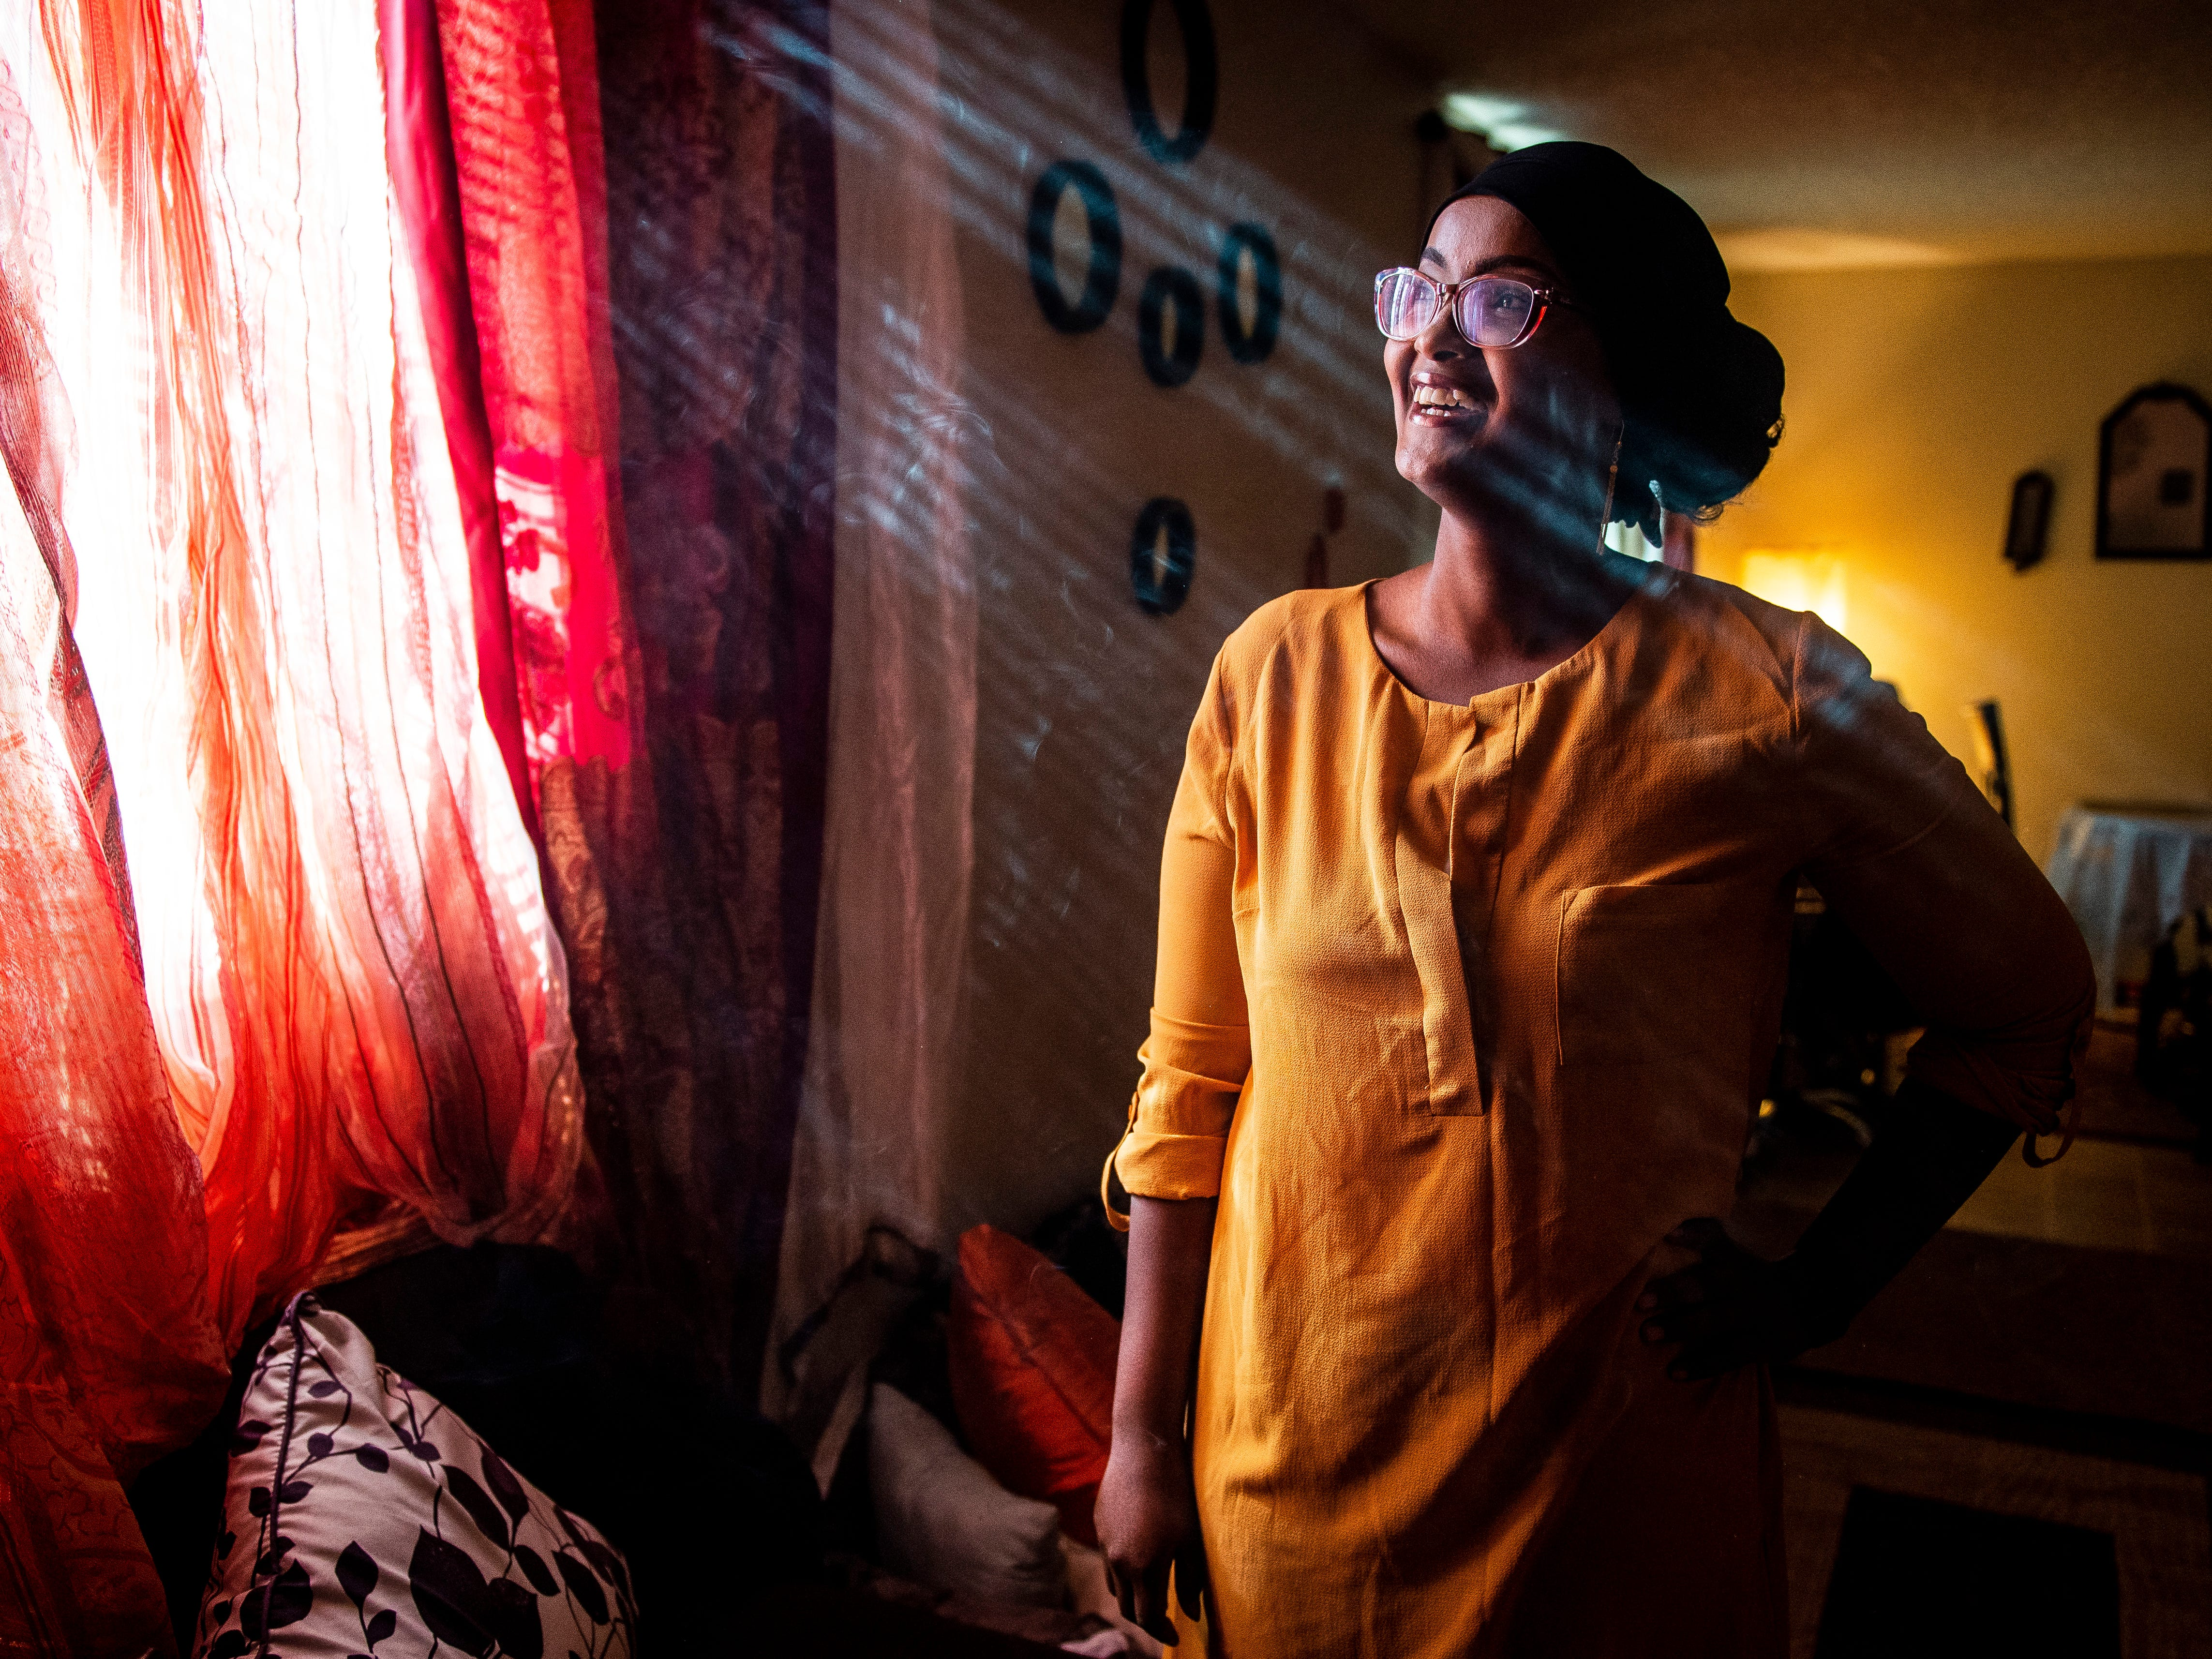 Wrapped in smoke from homemade incense, Ifrah Ahmed, who was born in Kenya to Somali refugees, stands for a portrait in her Garden City apartment  Wednesday, Jan. 23, 2019. Ahmed, who now works at the Tyson Fresh Meats meatpacking plant, has lived in the US since 2010.